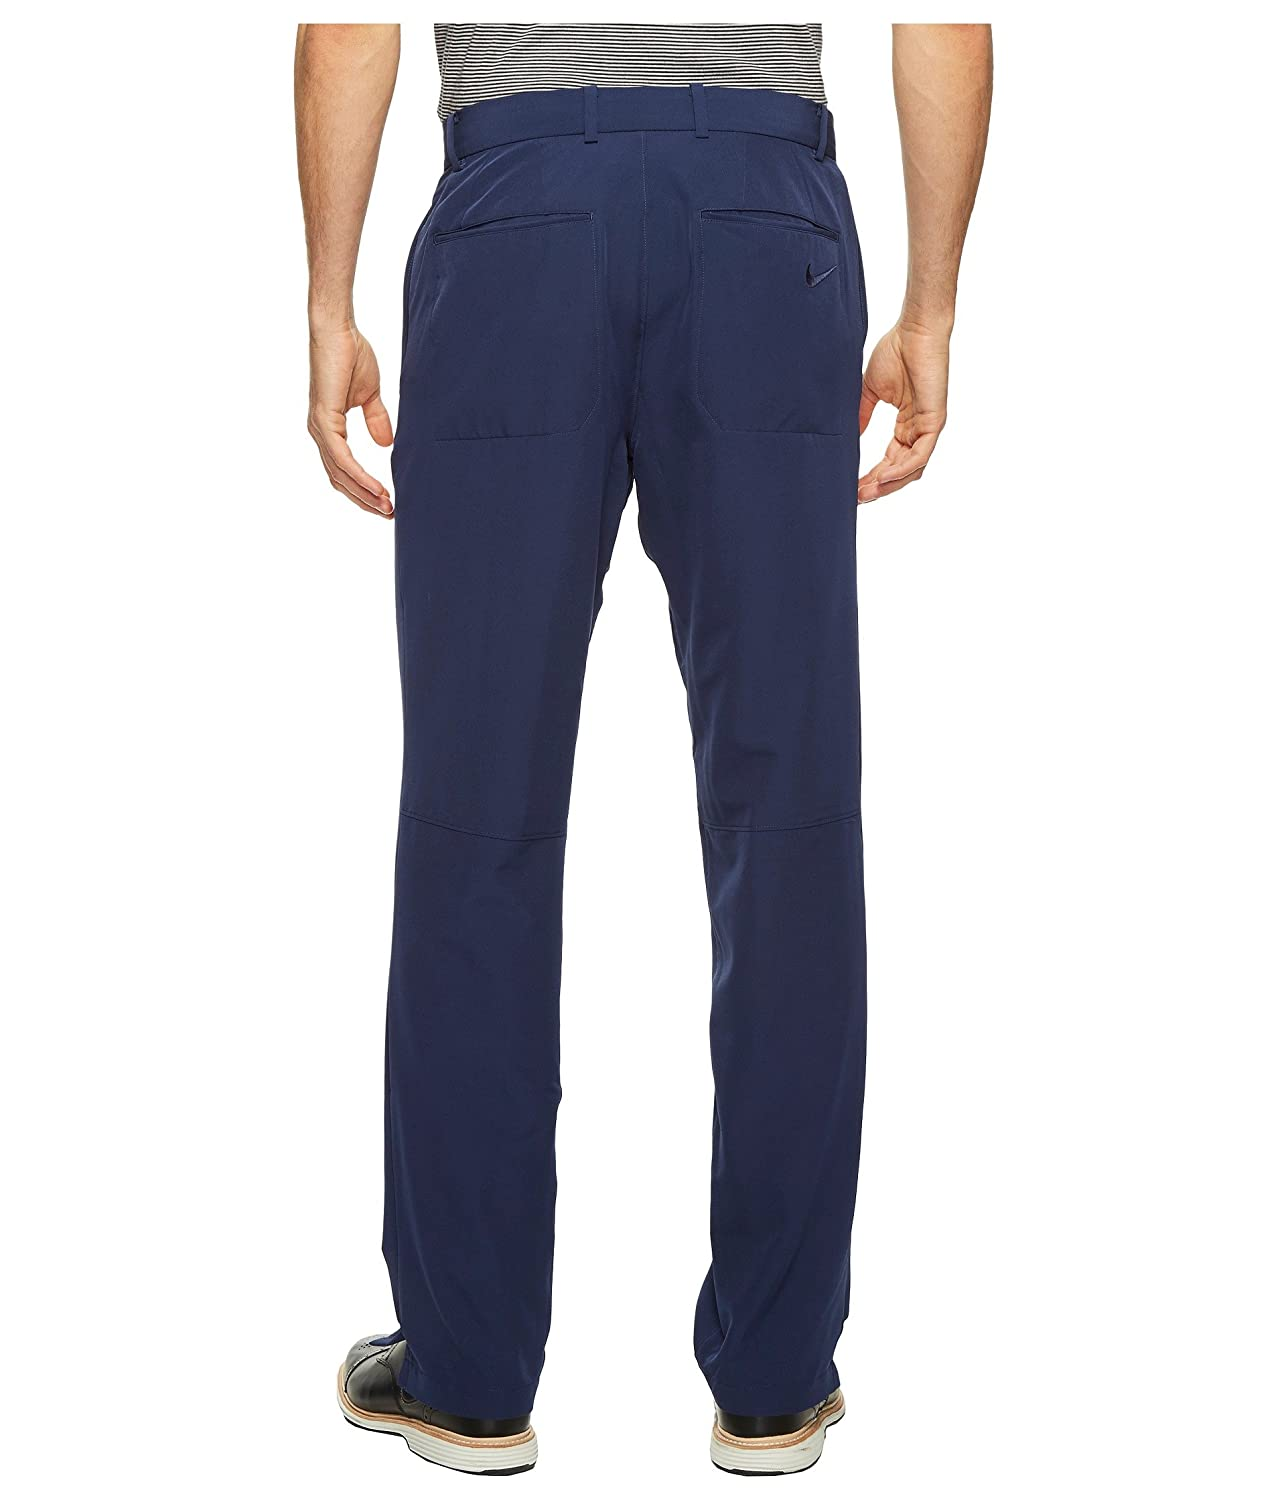 b7eb06f89 Amazon.com : Nike Men's Flex Hybrid Golf Pants : Clothing